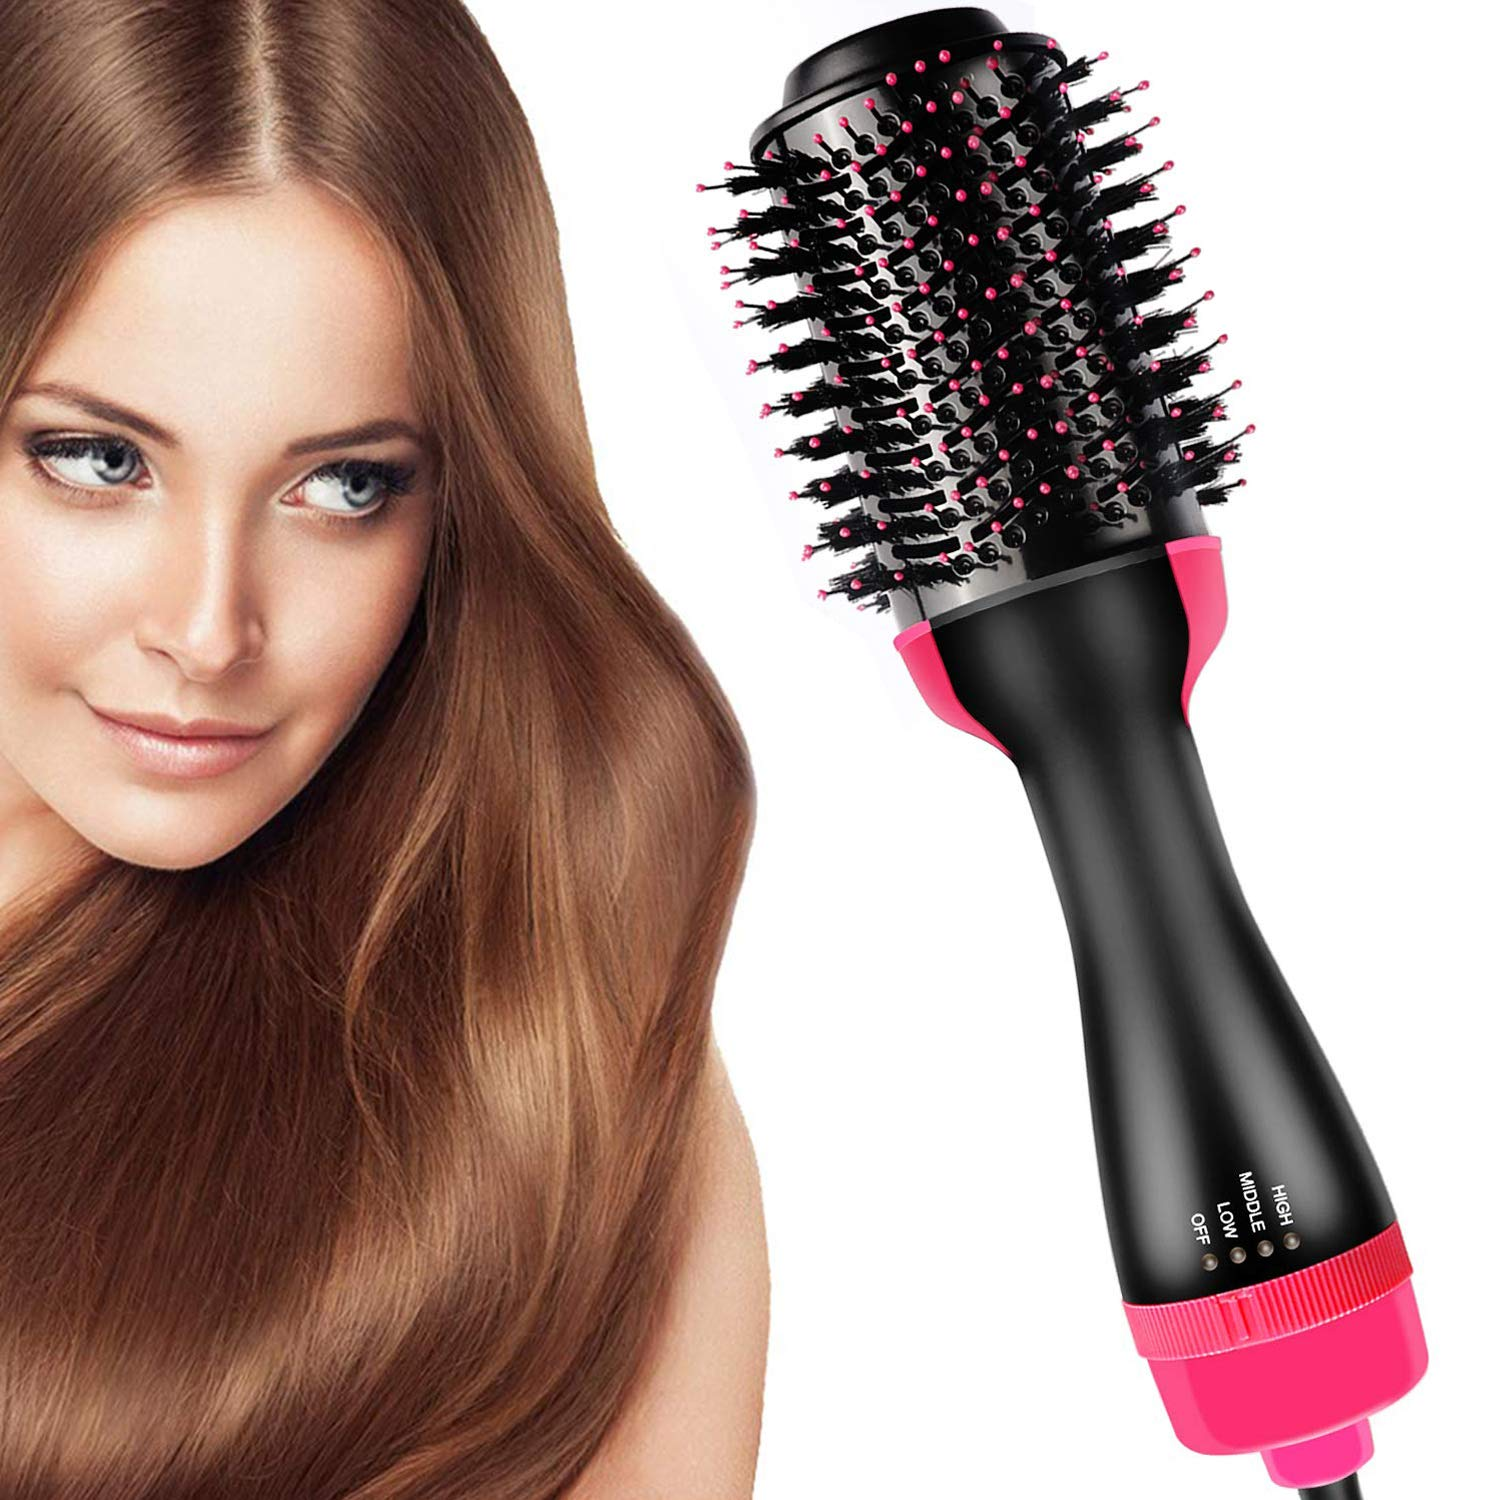 Hair Dryer Brush and Hot Air Brush, Bvser Air Hair Brush 3 in 1 Electric One Step Hair Dryer Volumizer with Negative Ion Curling Dryer Brush Styler, Hair Straightening Brush, Rotating Blow Dryer Brush